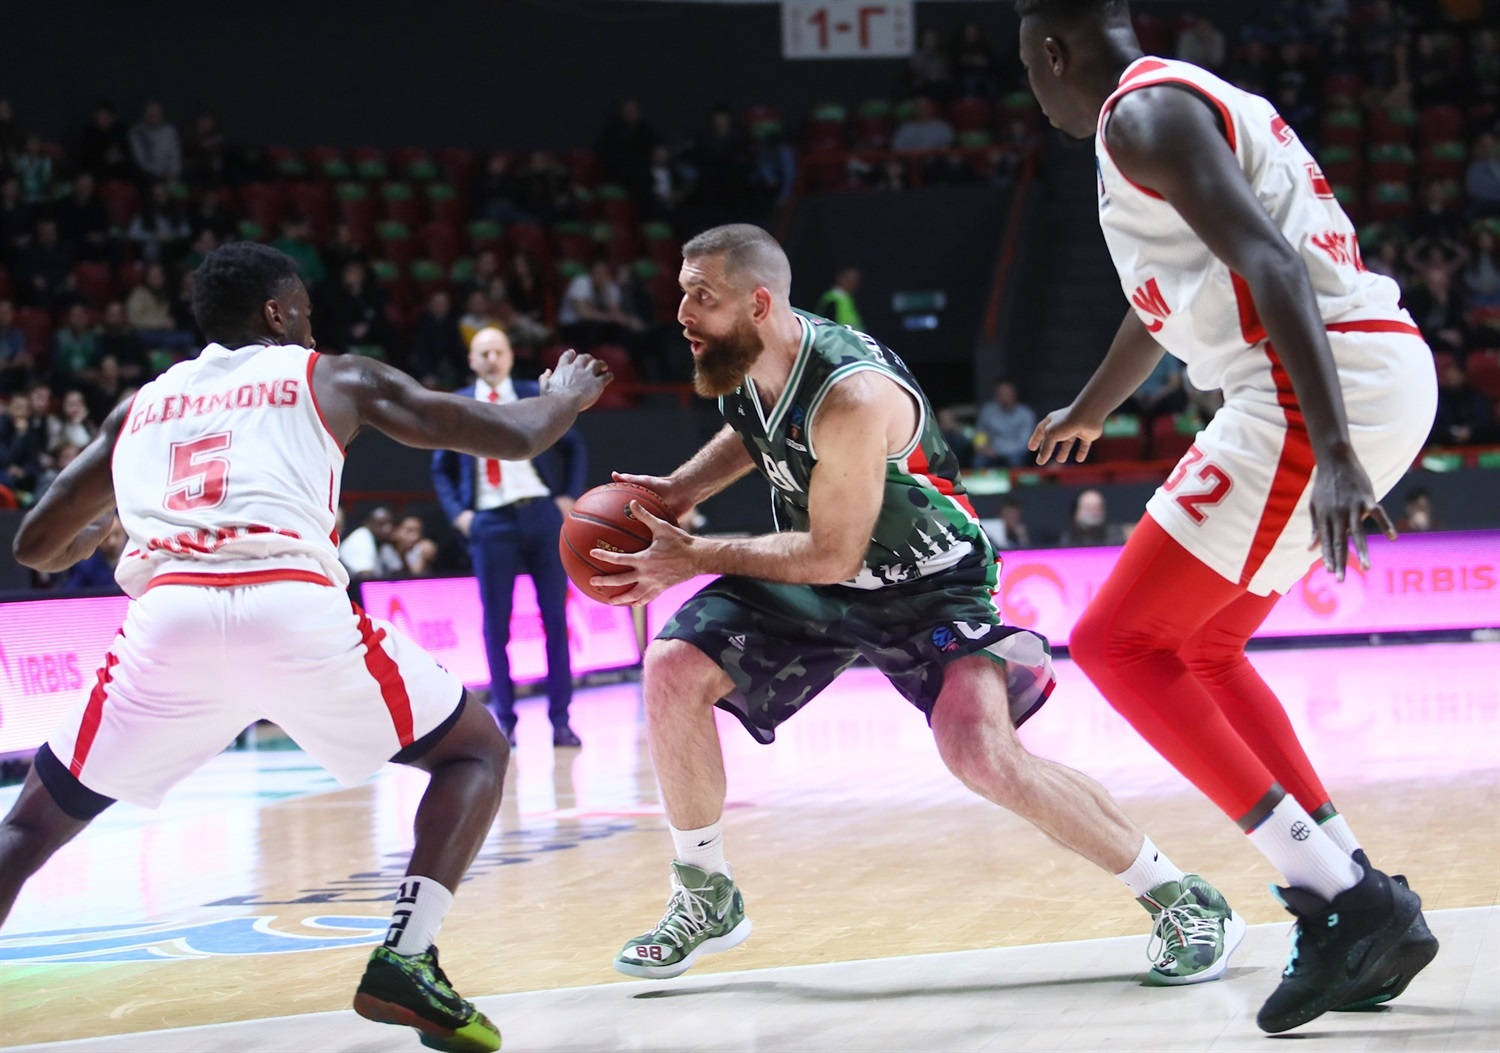 Kostas Kaimakoglou - UNICS Kazan (photo UNICS) - EC19